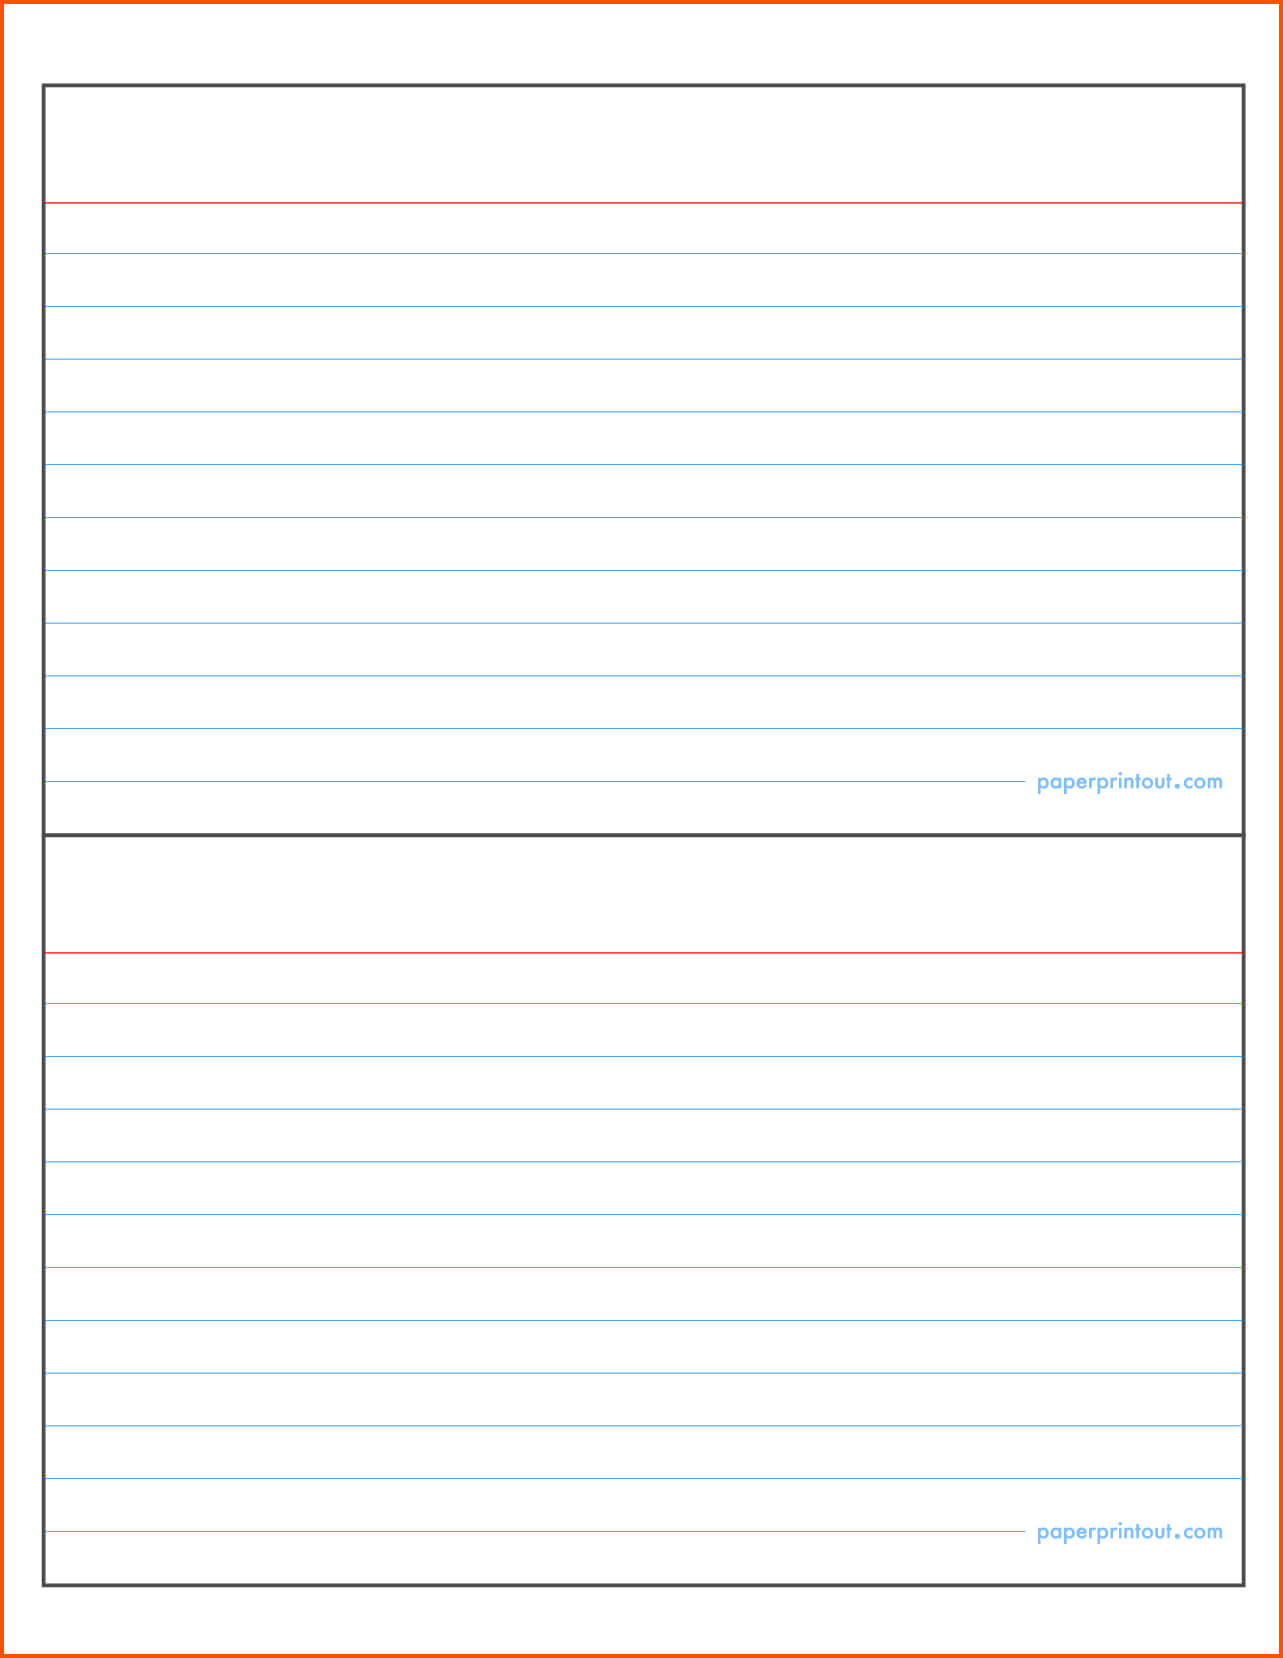 20 Images Of Ms Word 3 X 5 Index Card Template | Zeept Throughout 4X6 Note Card Template